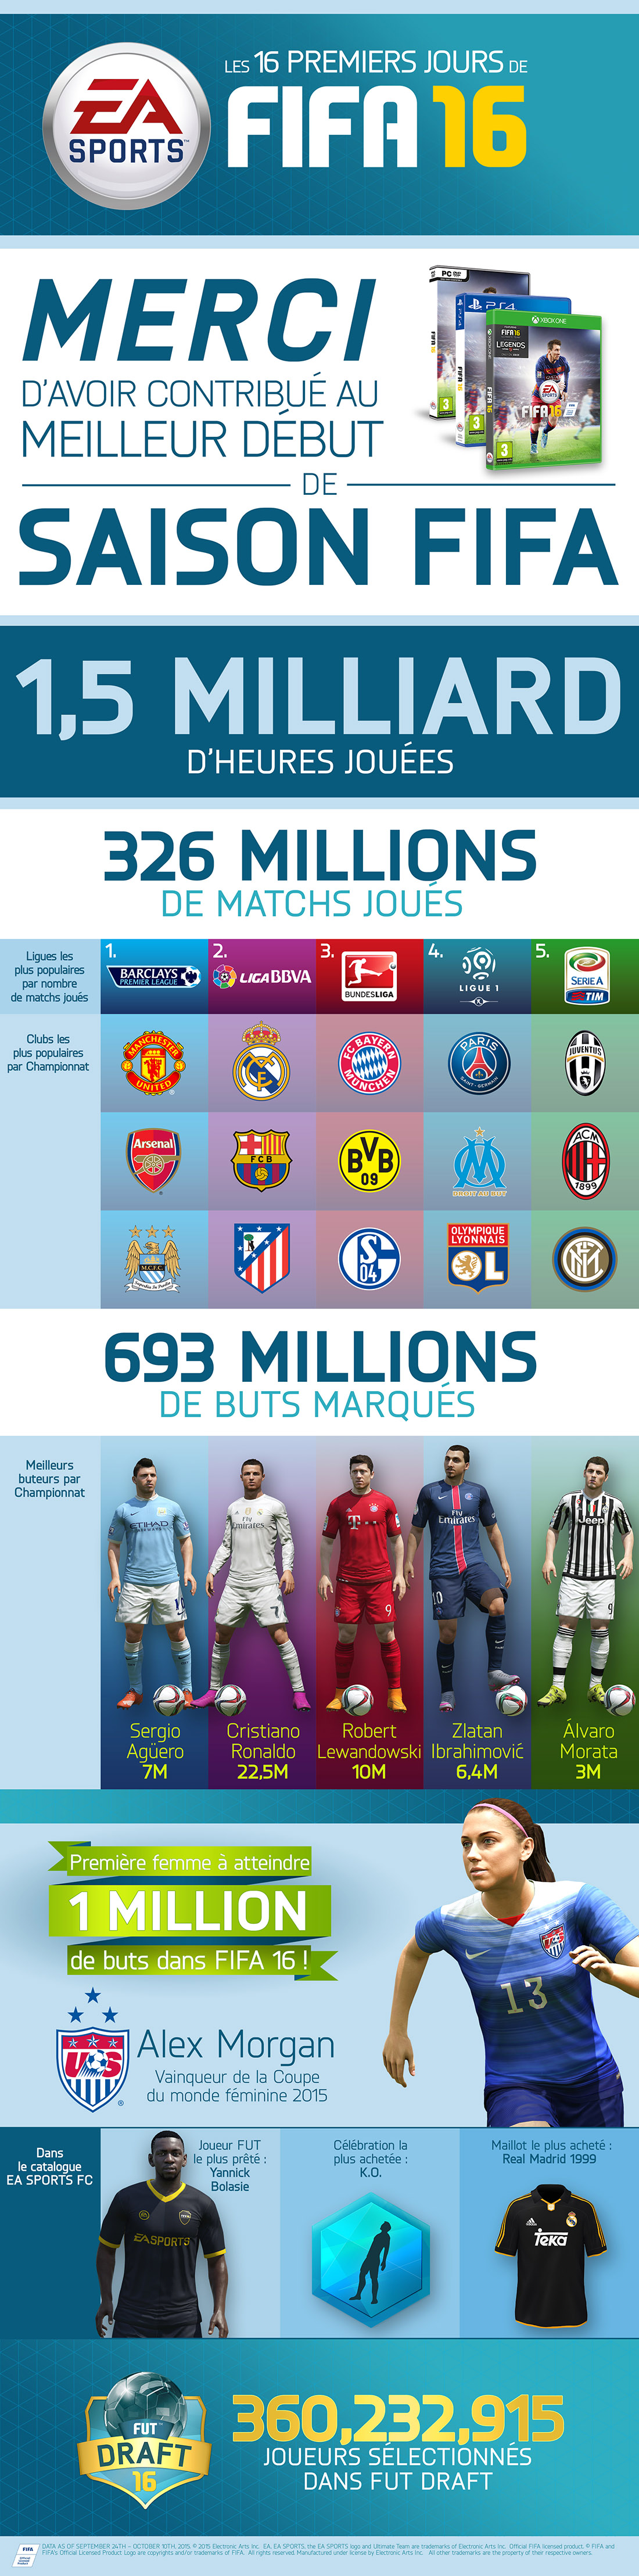 FIFA 16 une infographie